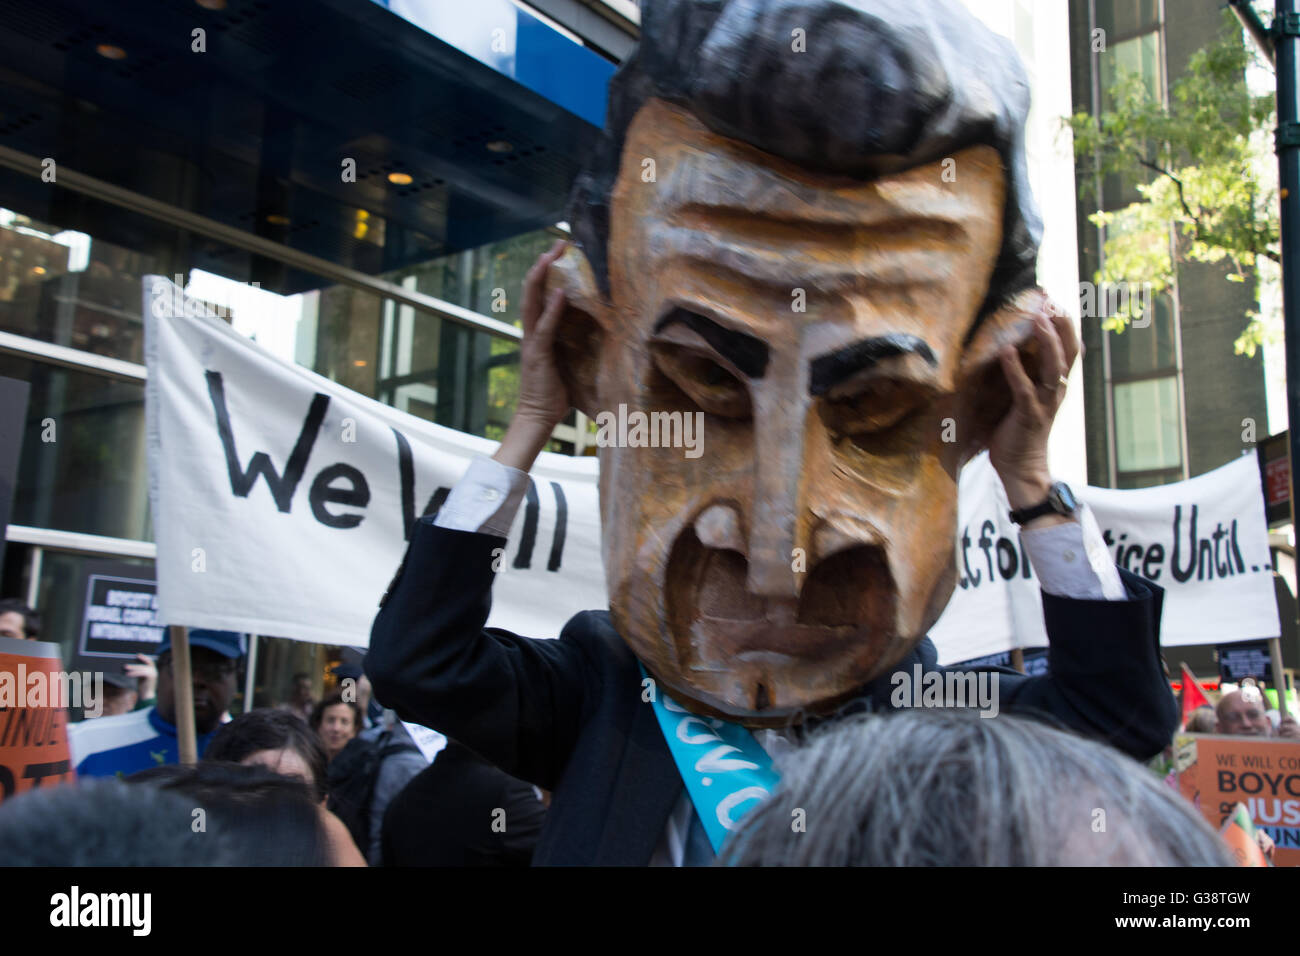 New York, USA. 9th June 2016. NY Governor Cuomo shown in effigy at protest at his office building. Pro-Palestinian - Stock Image